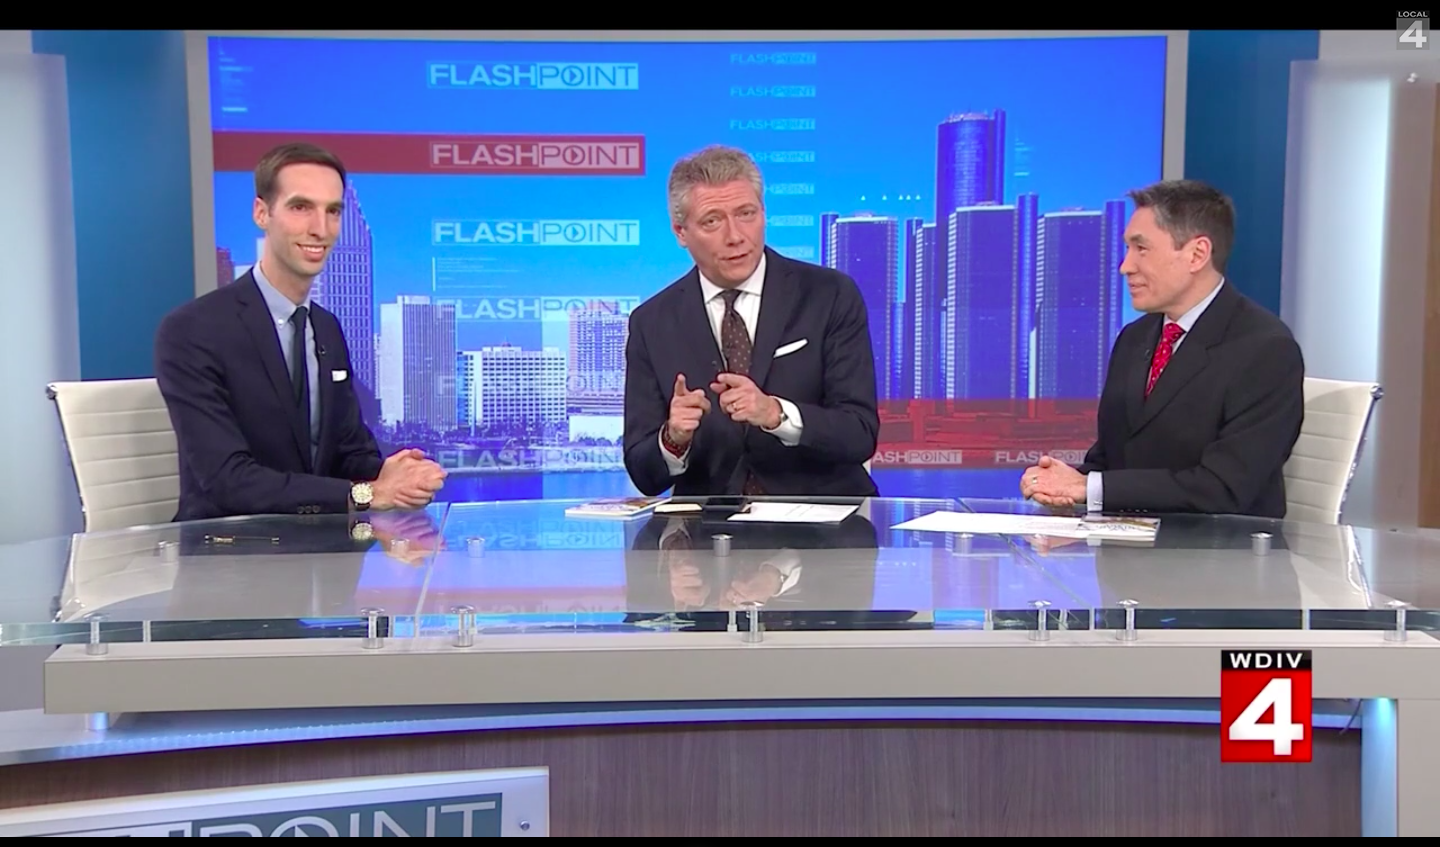 Paul Thomas MD on Flashpoint with Devin Scillian and Dr. Frank McGeorge of WDIV Channel 4 in Detroit, Michigan, discussing Direct Primary Care.